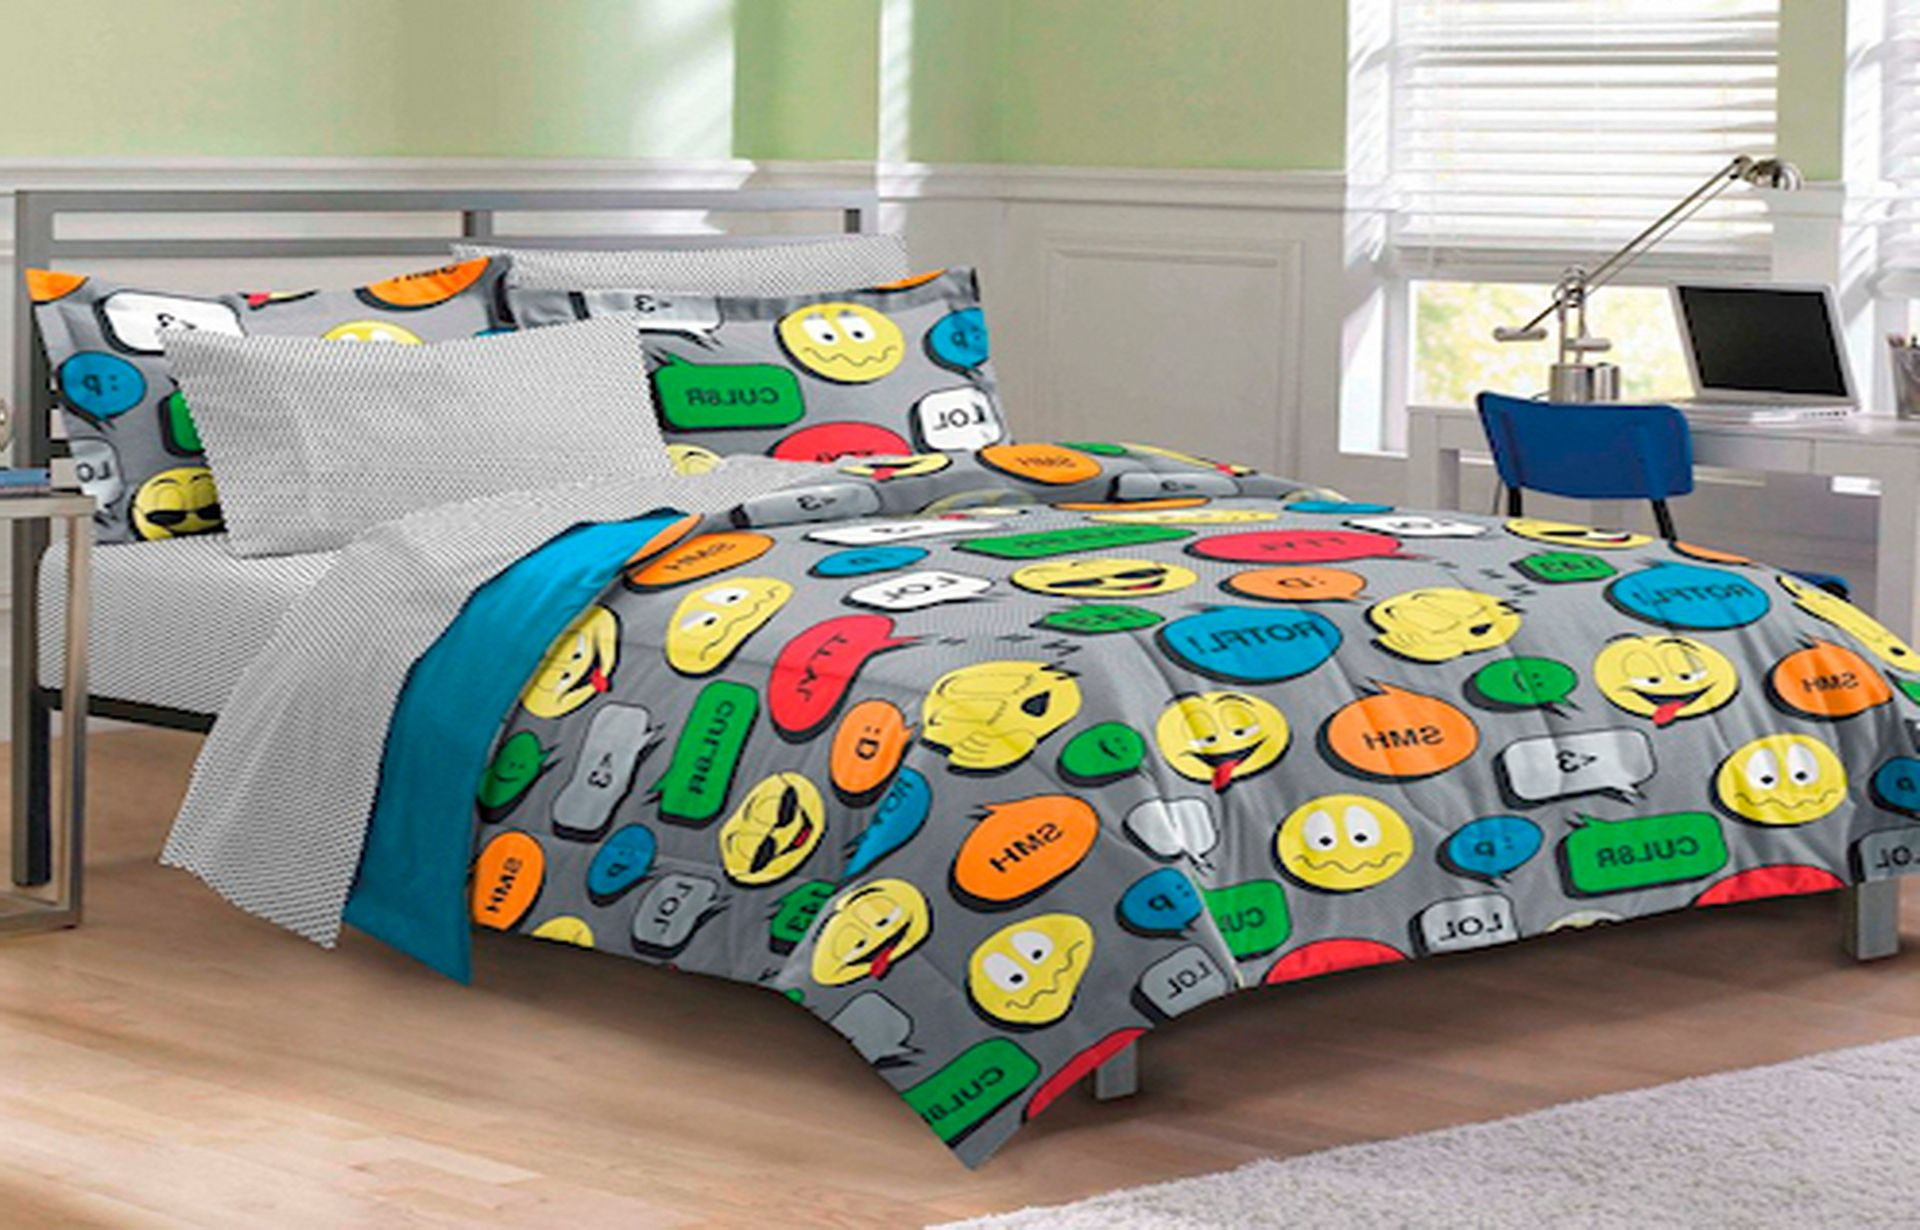 Colorful Details on Grey Teen Boy Bedding Decorating Simple Bed in Minimalist Bedroom with Hardwood Flooring